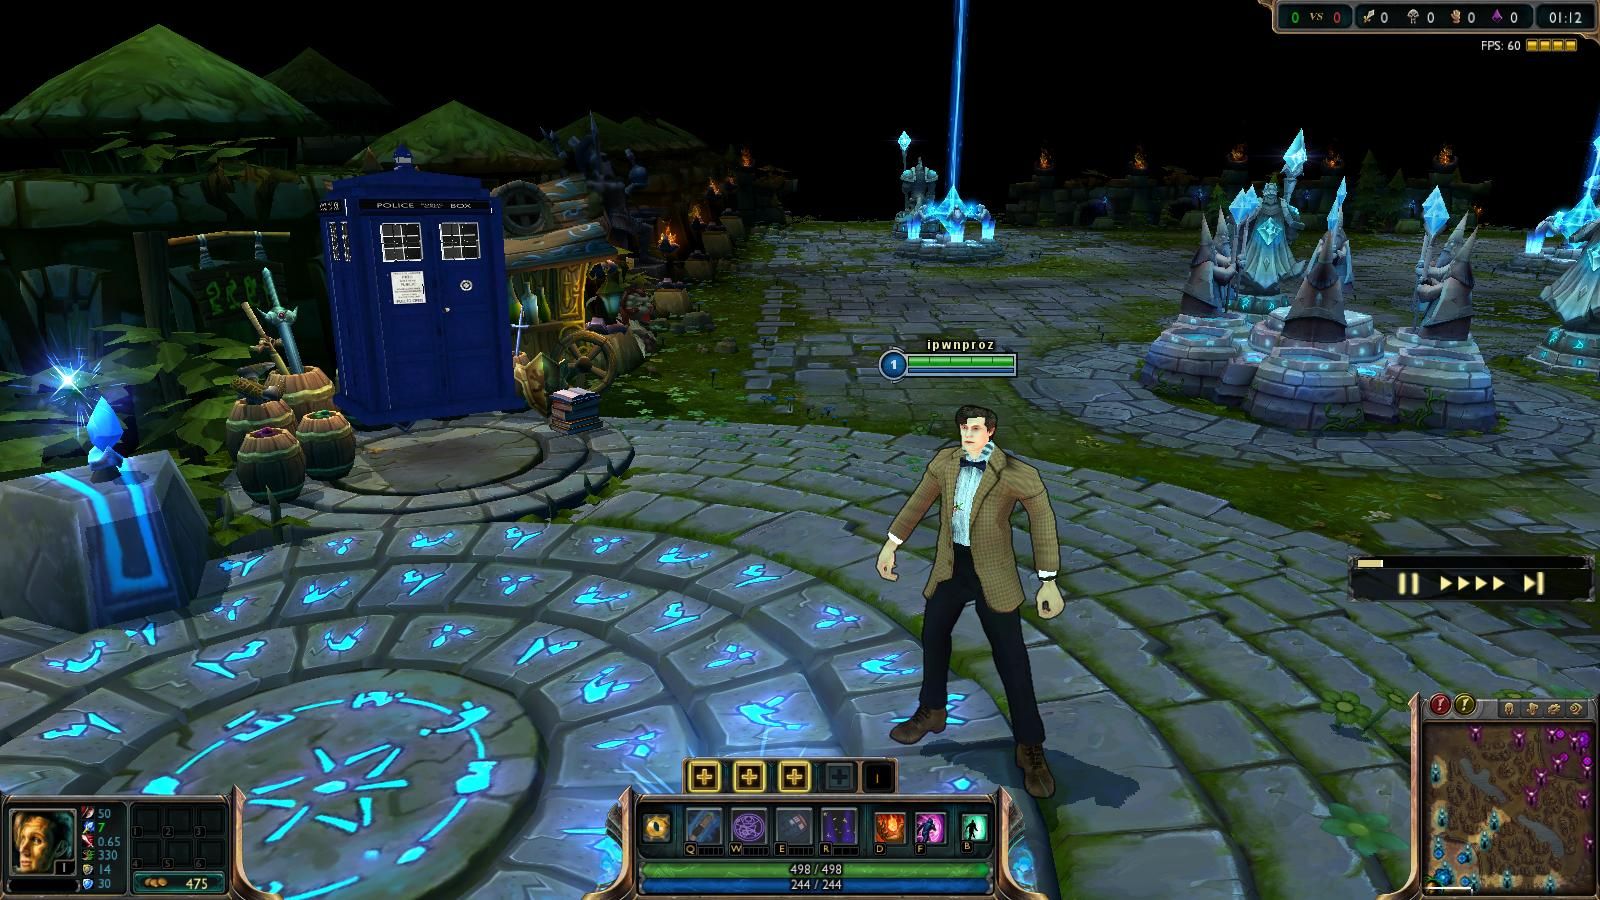 Doctor Who Eleventh Doctor Skin for LoL by carlozs on DeviantArt